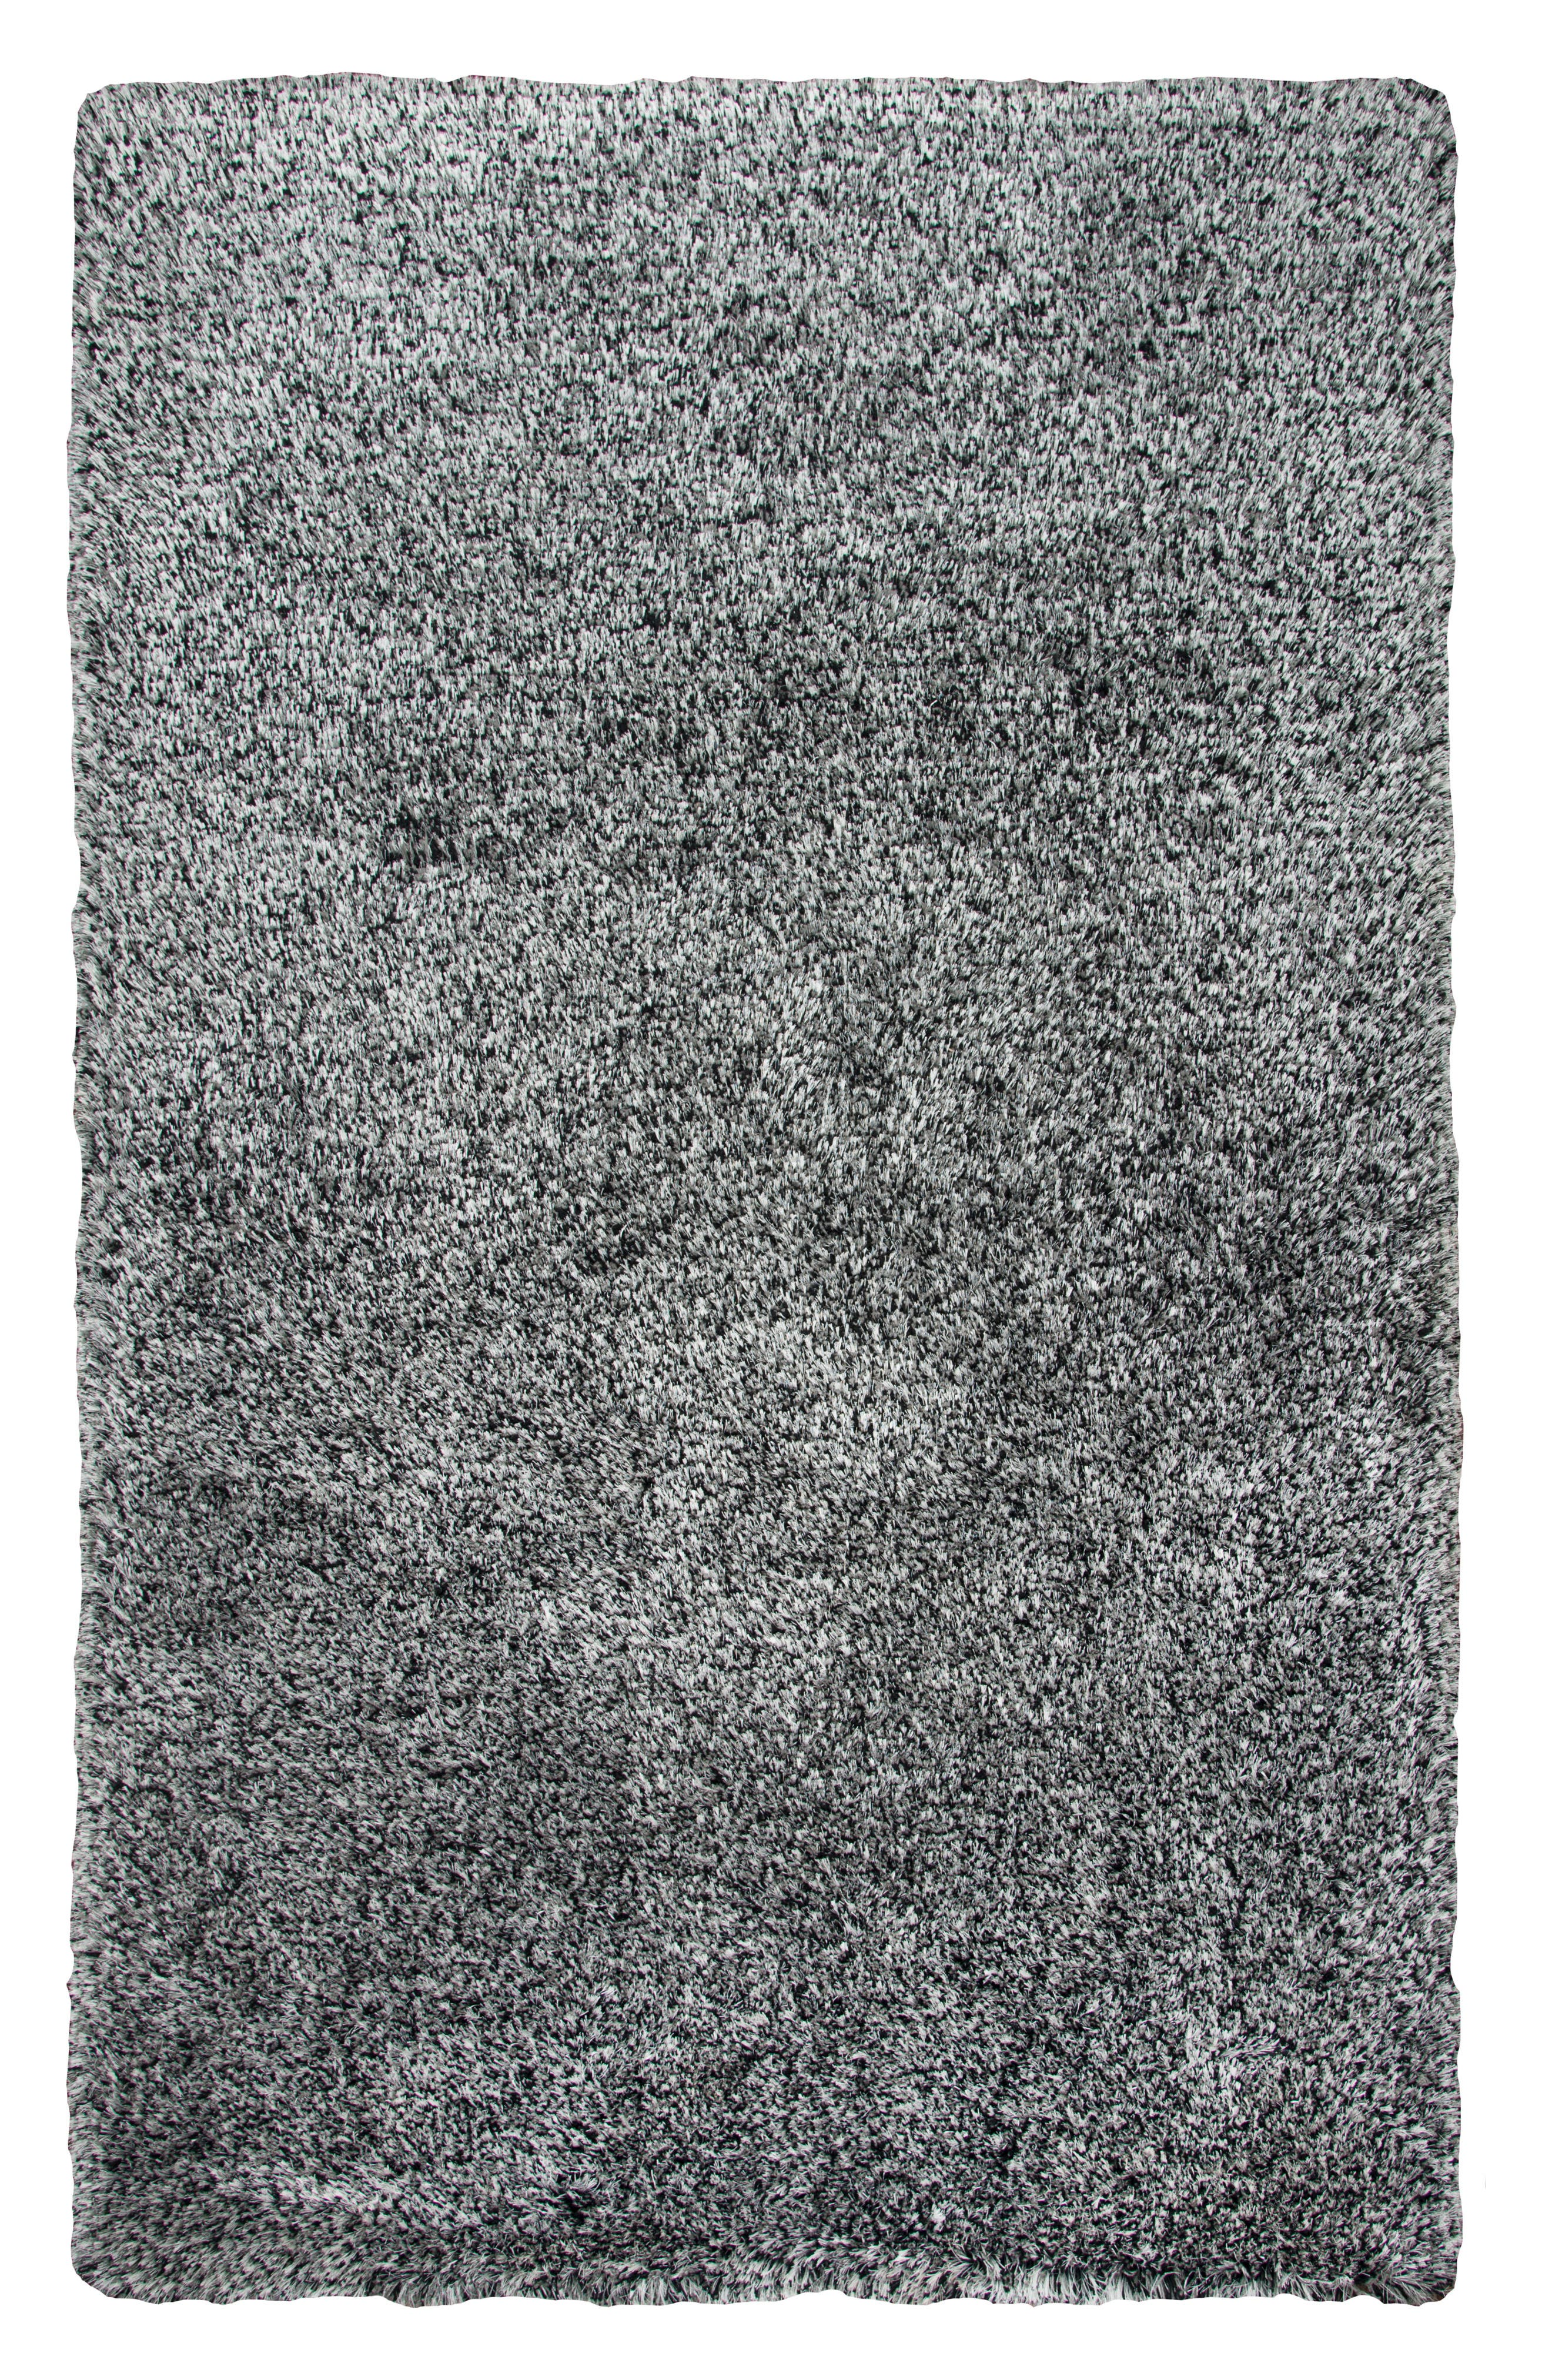 Alternate Image 1 Selected - Rizzy Home Commons Thea Rug